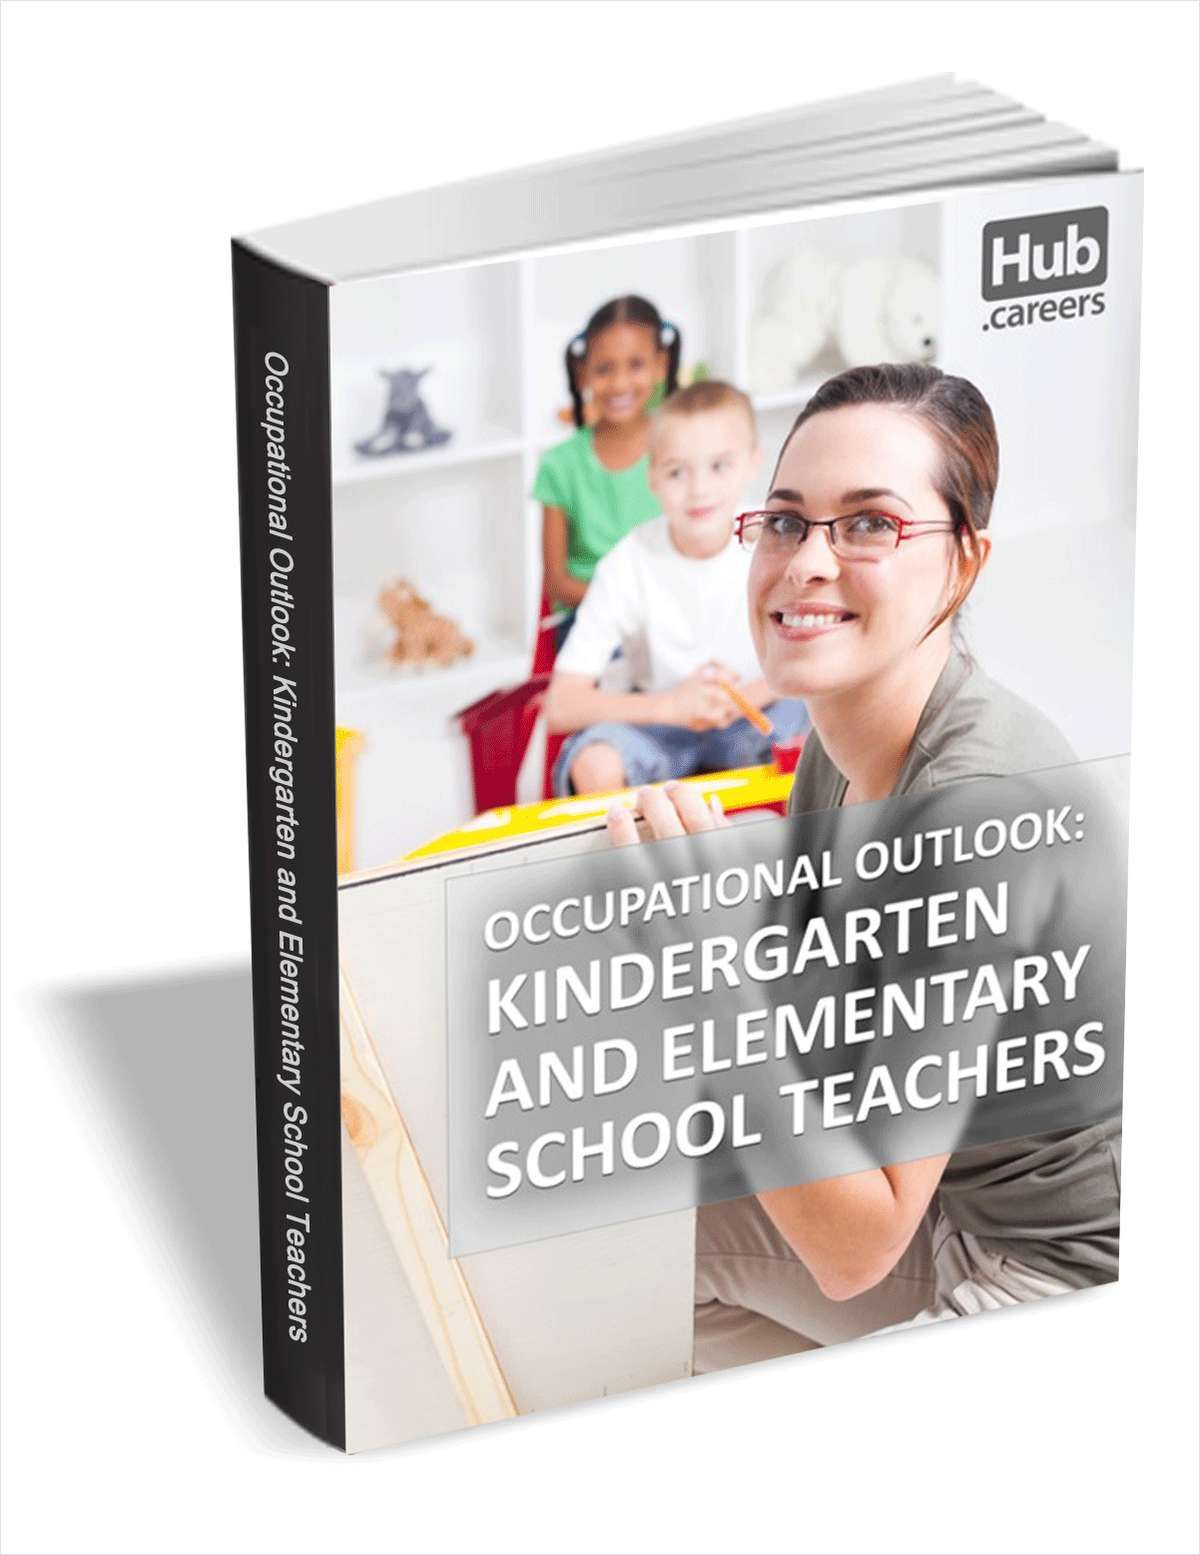 Kindergarten and Elementary School Teachers - Occupational Outlook